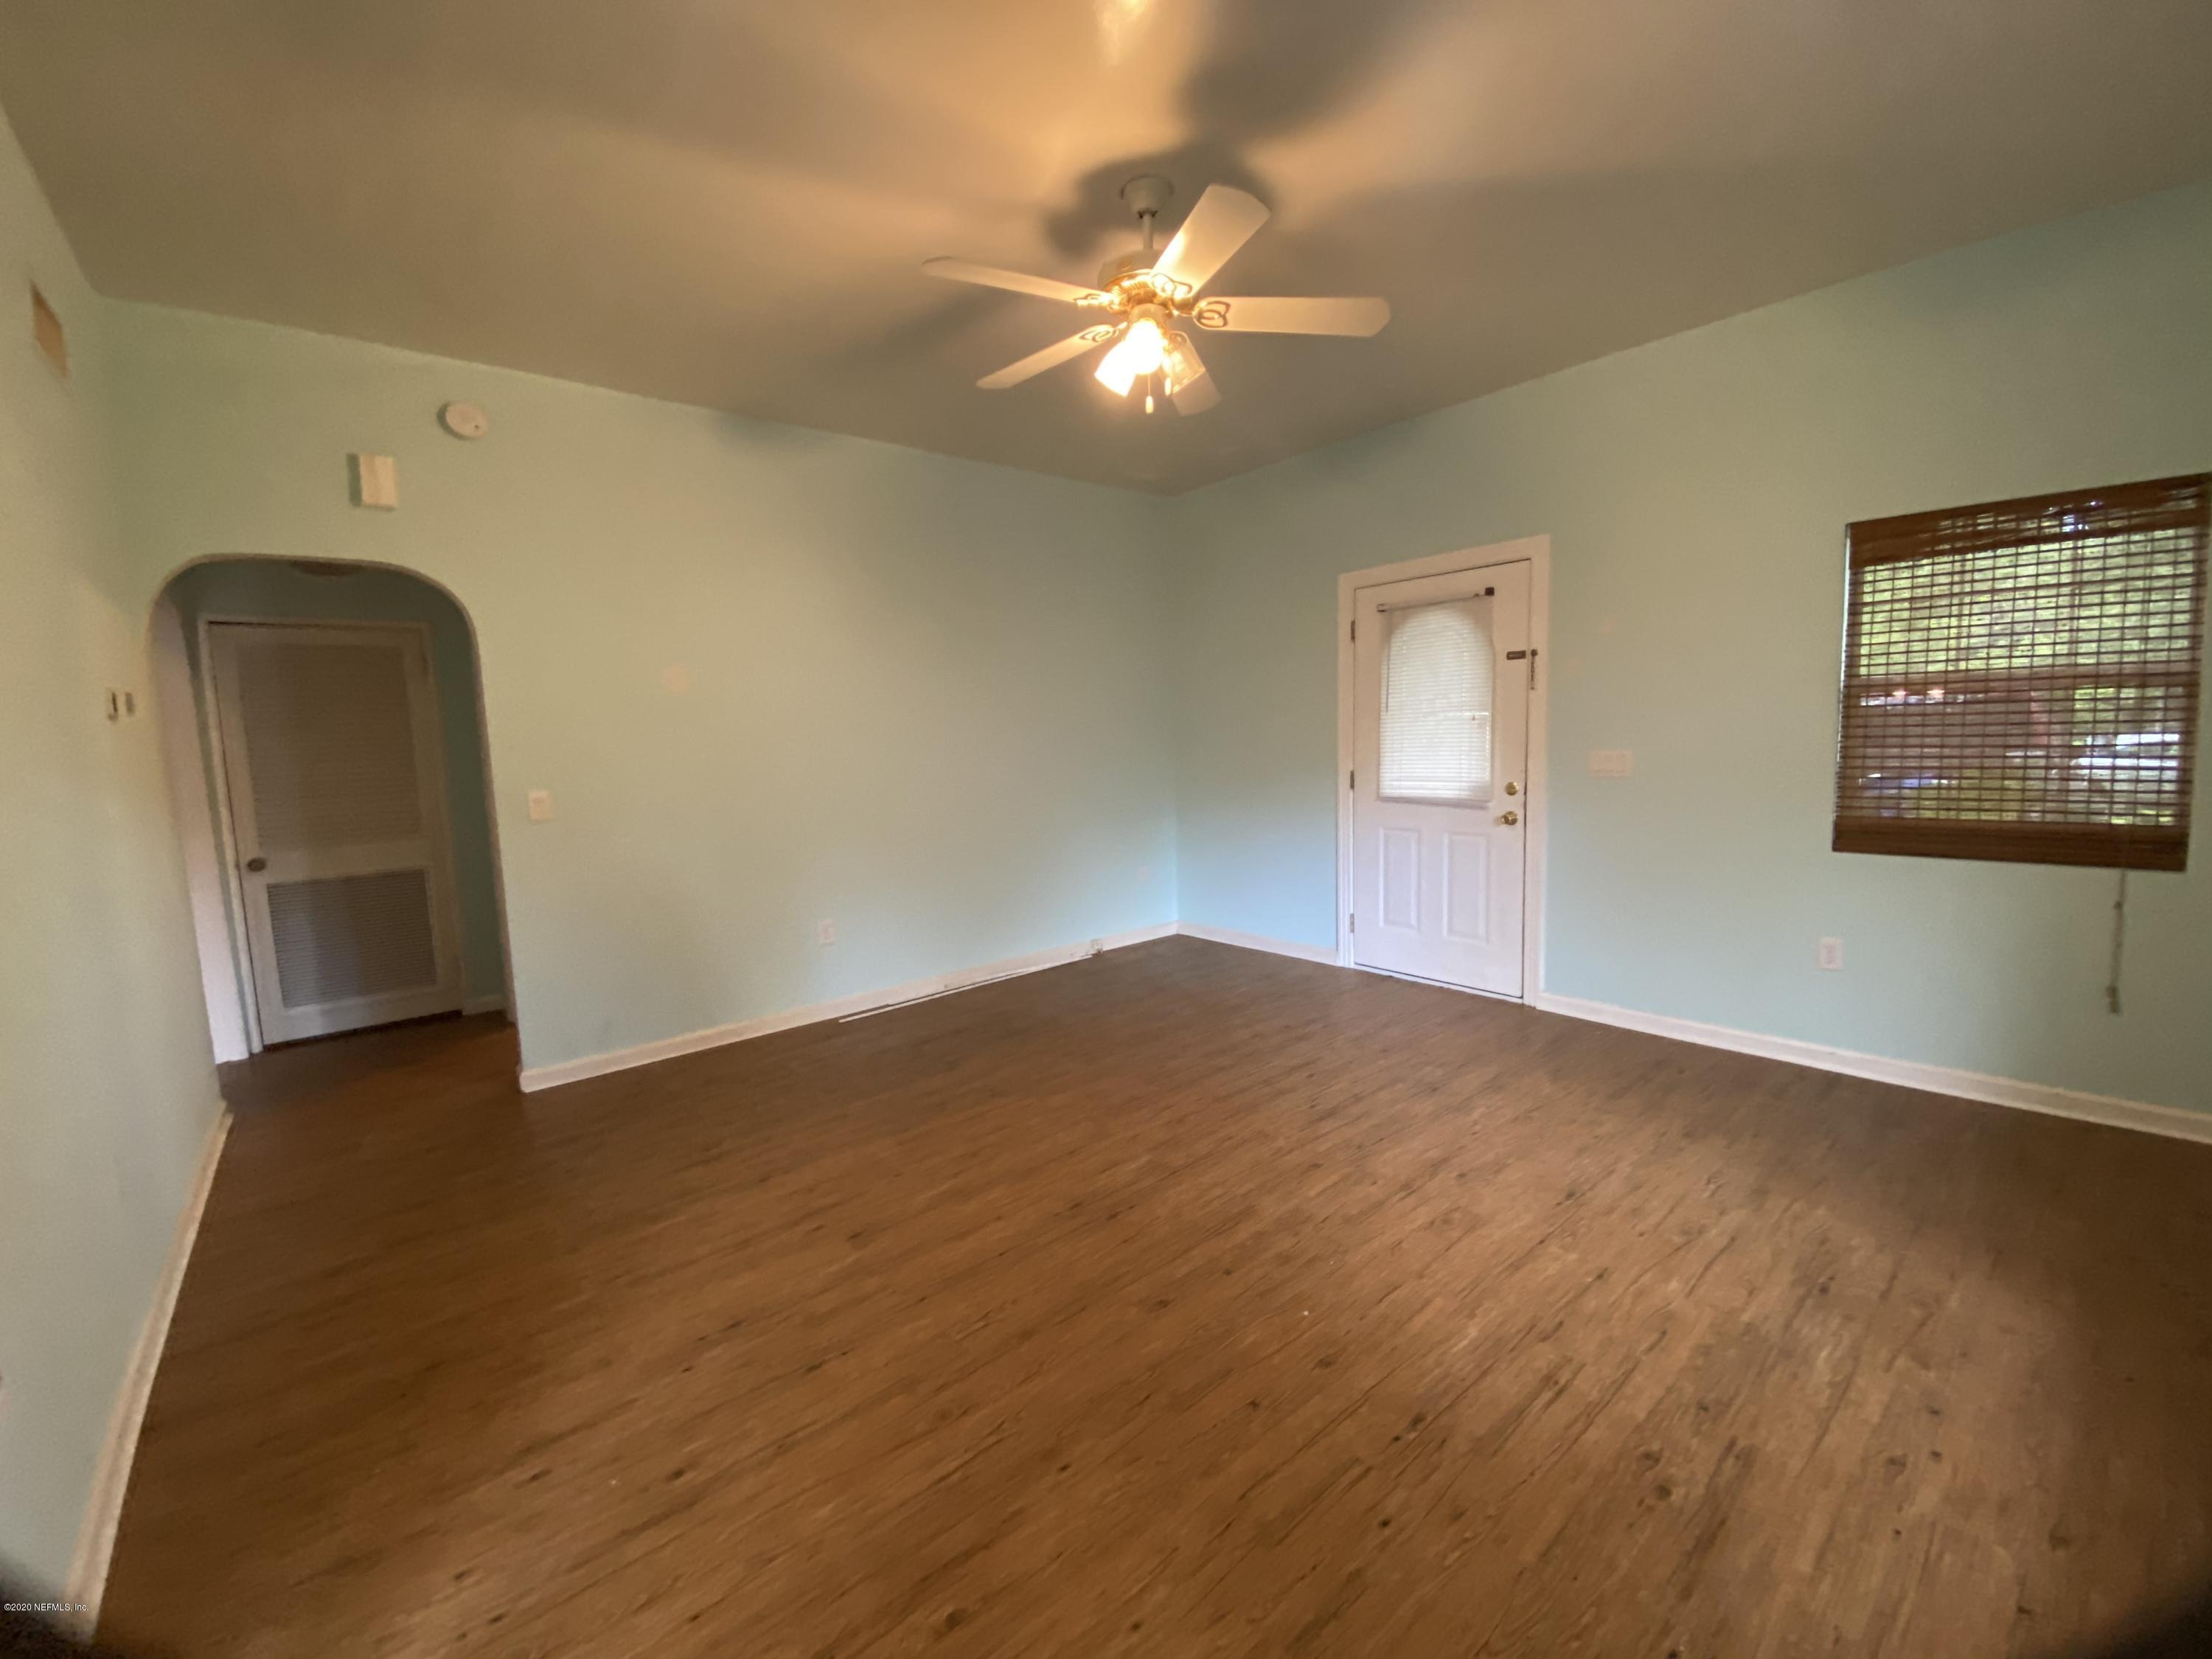 3658 WALSH, JACKSONVILLE, FLORIDA 32205, 2 Bedrooms Bedrooms, ,1 BathroomBathrooms,Investment / MultiFamily,For sale,WALSH,1080879